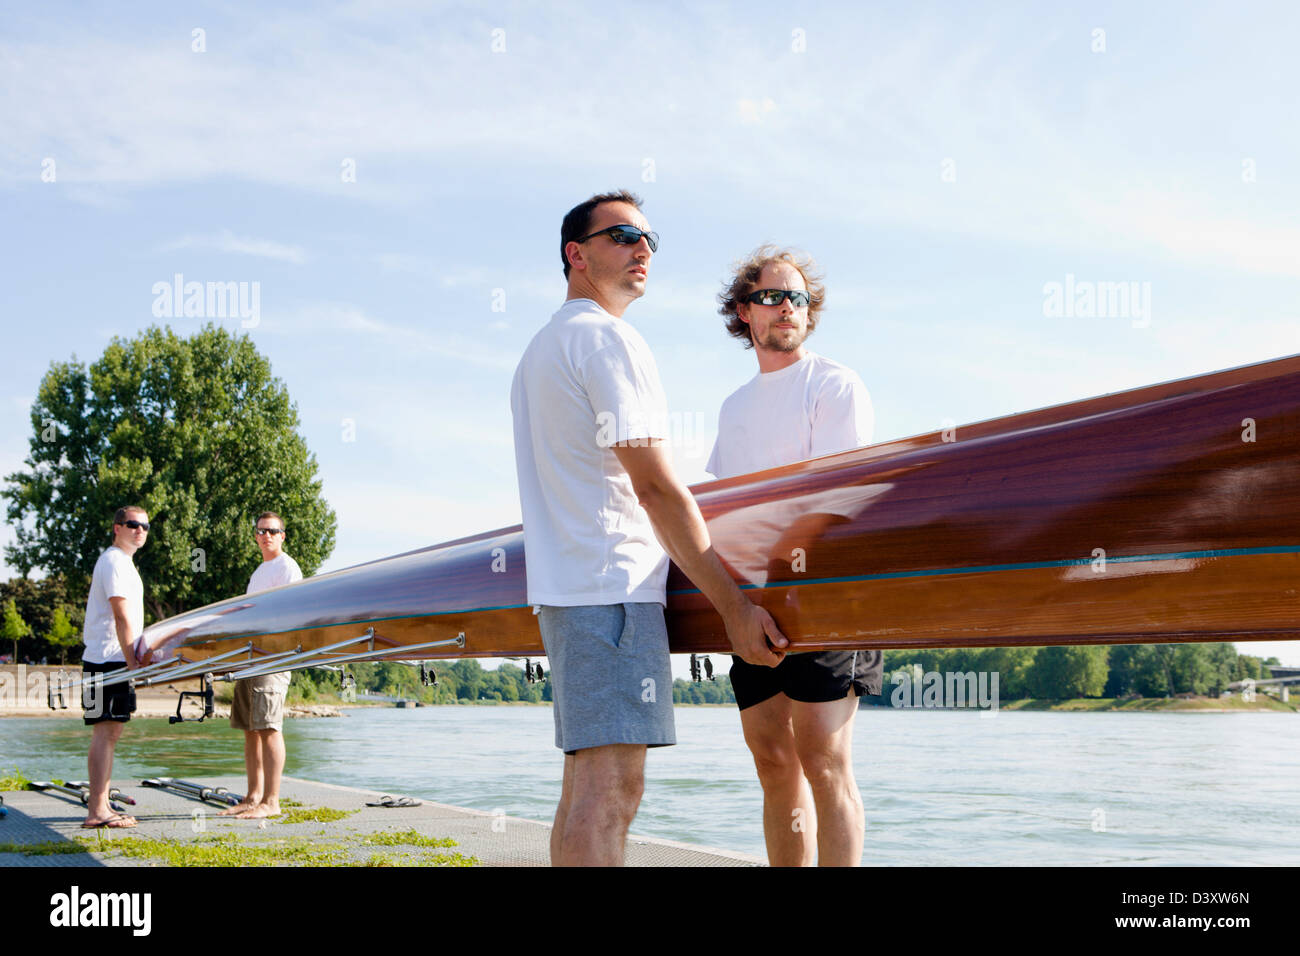 Teamwork Concept of Men Rowing Team Carrying Boat to Water - Stock Image